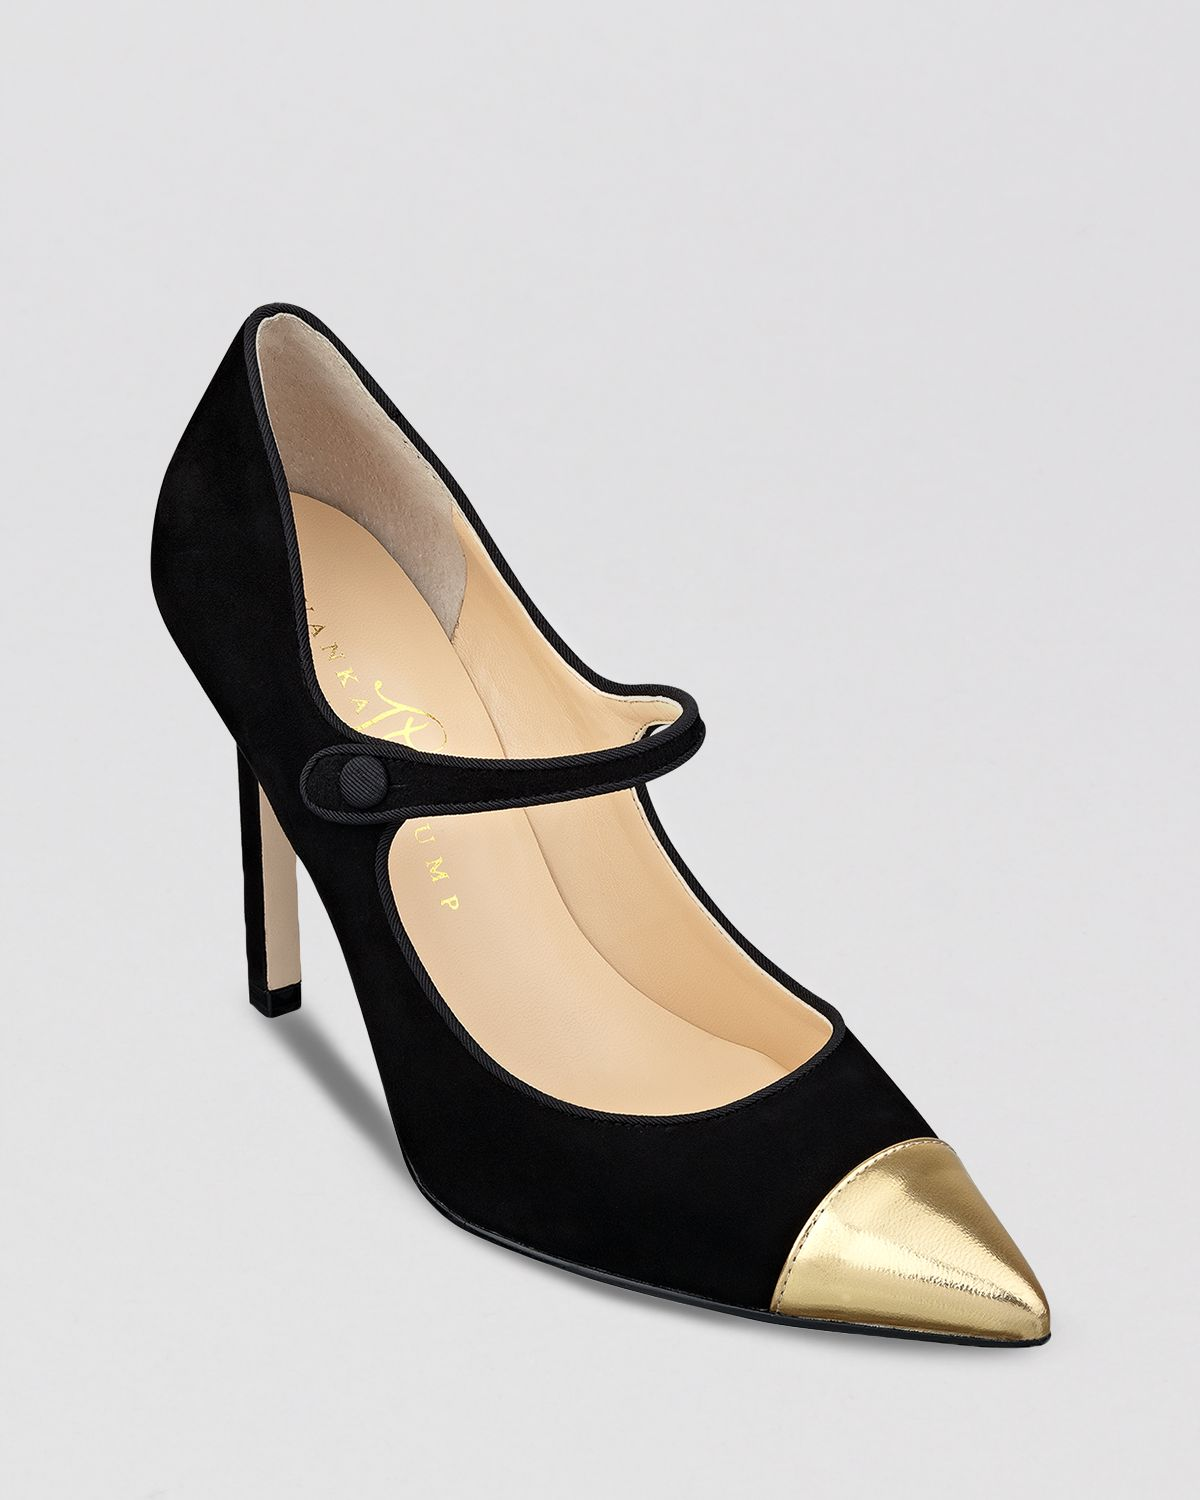 Lyst - Ivanka Trump Cap Toe Pointed Toe Pumps Carni Mary Jane in Black